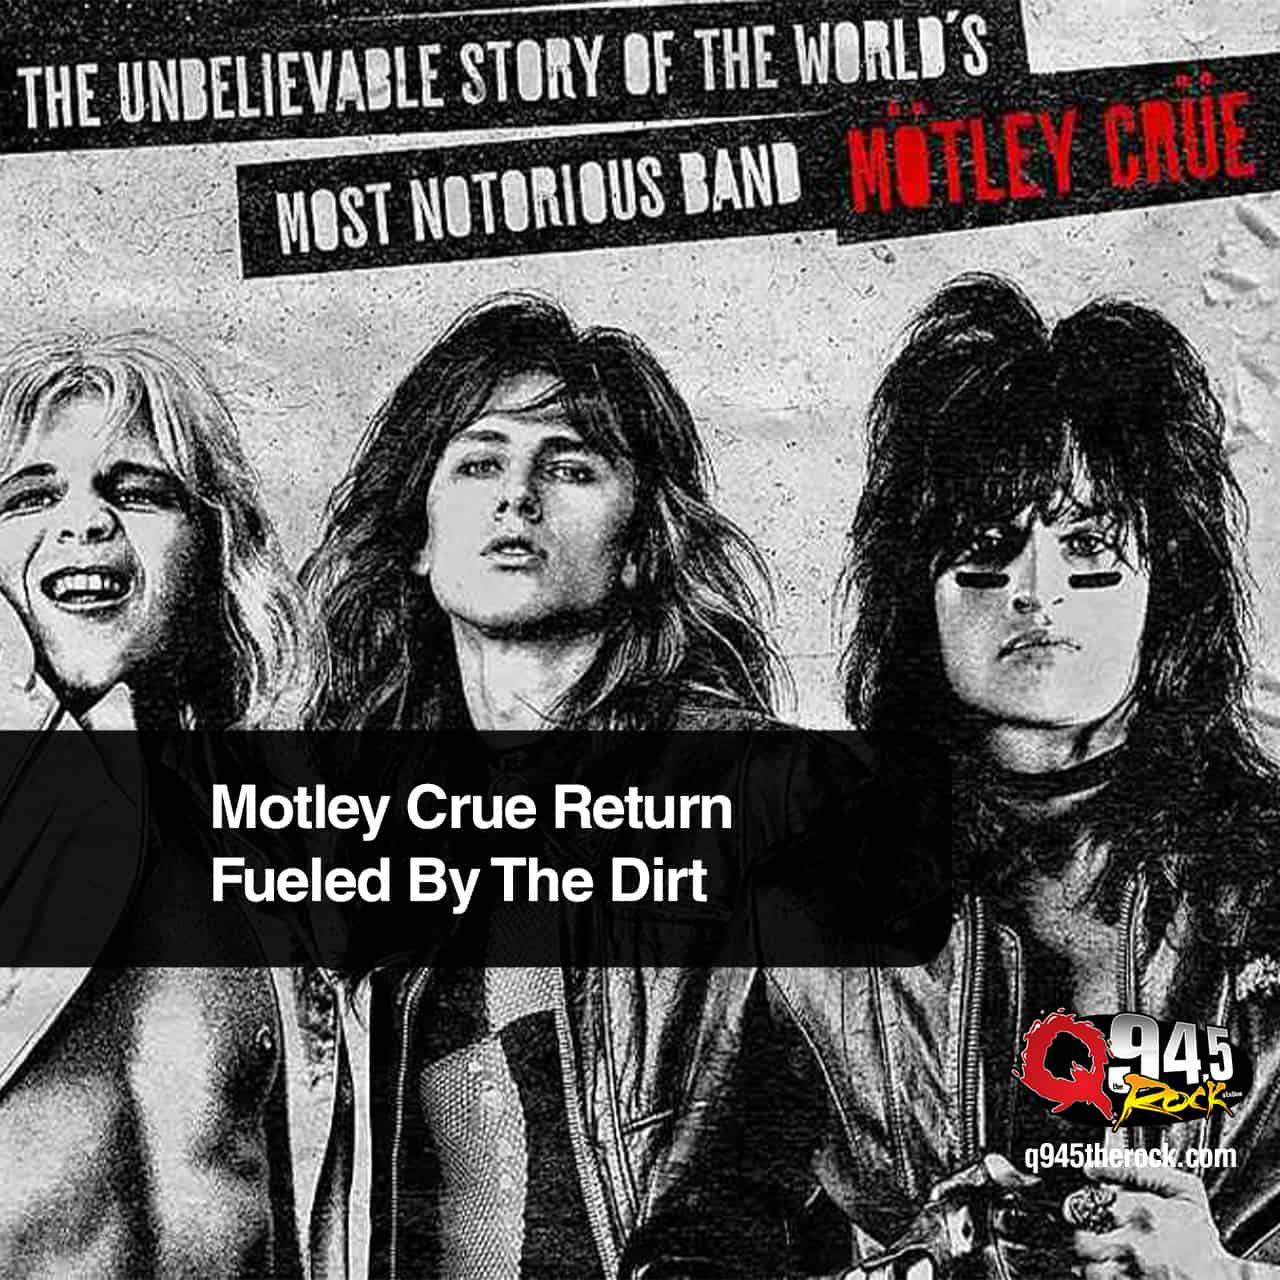 Motley Crue Return Fueled By The Dirt